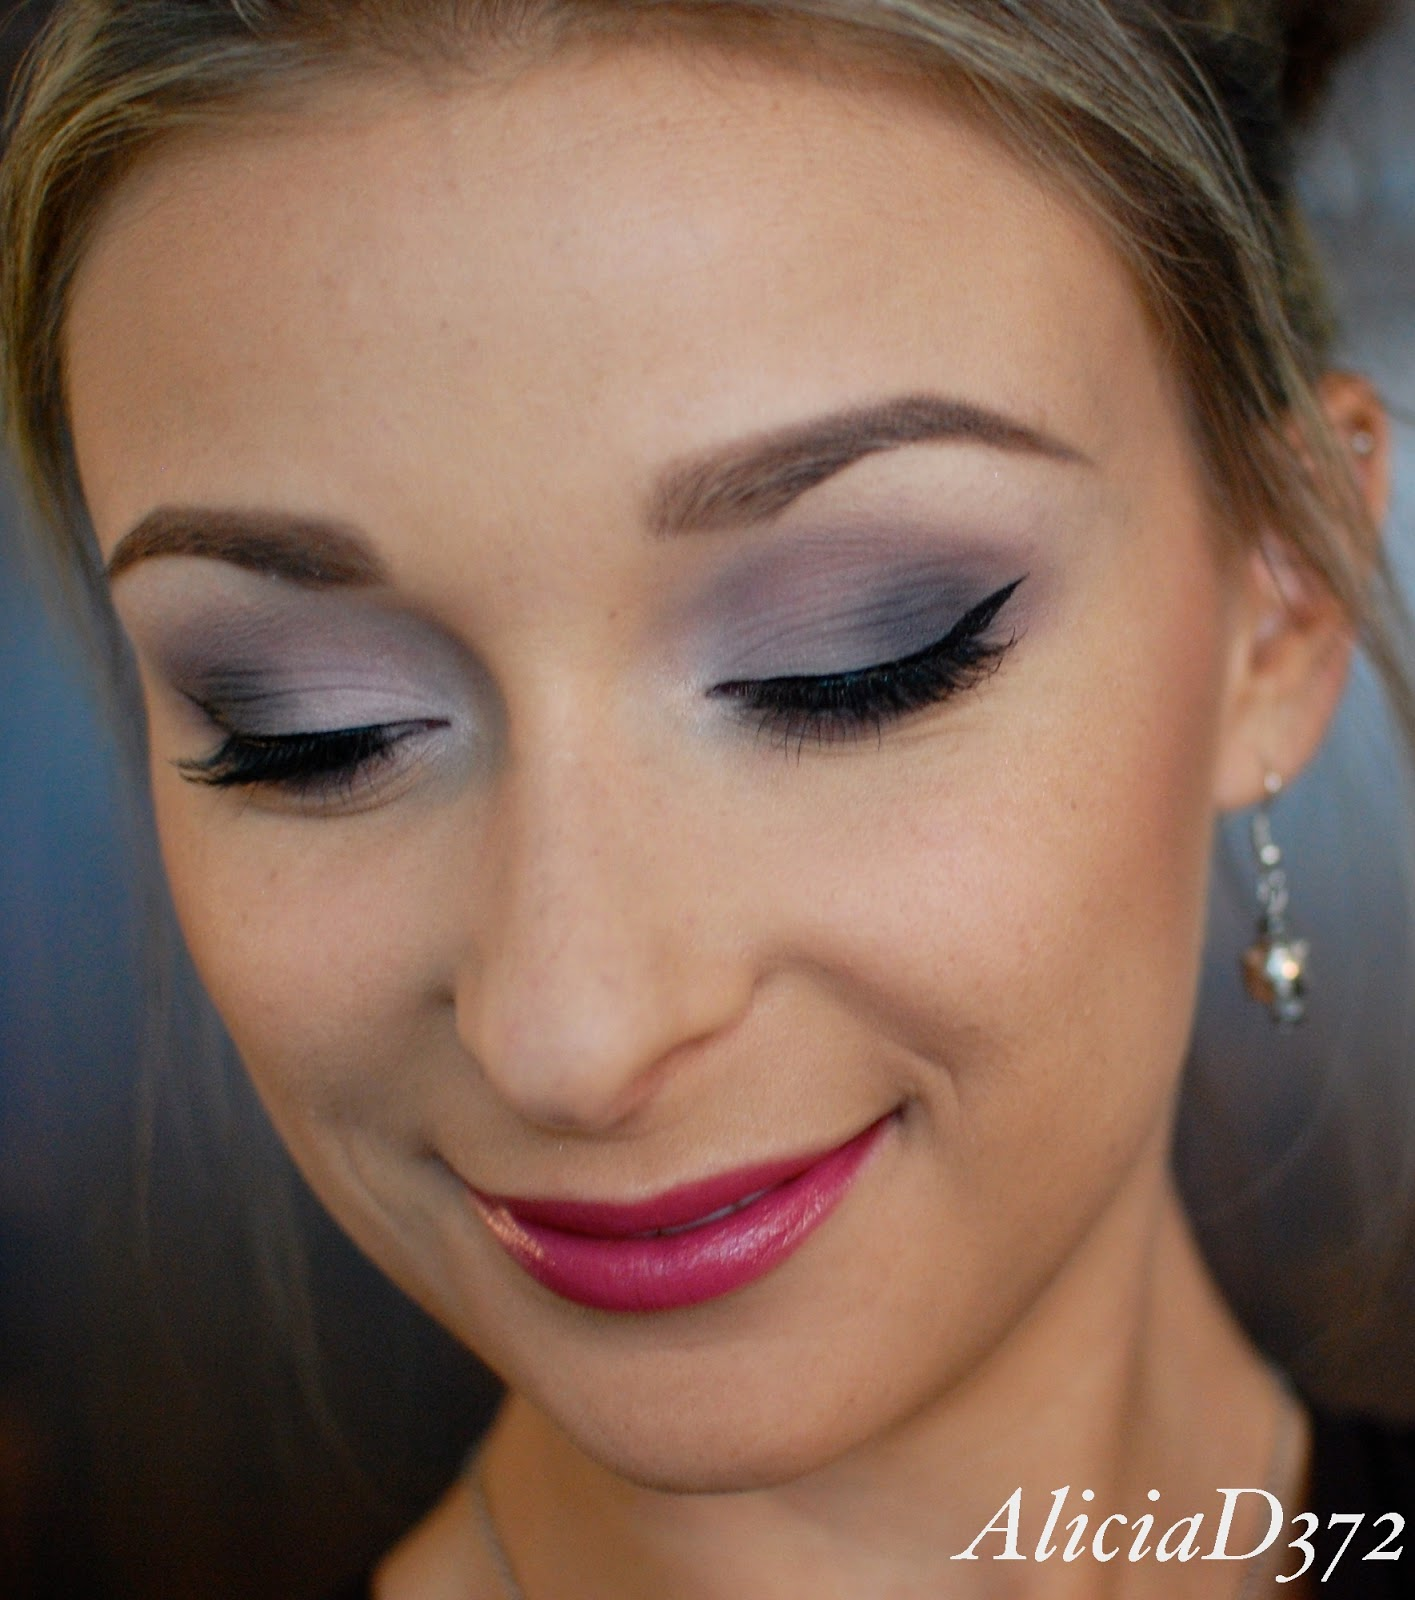 Aliciad372 mauve mania makeup tutorial i hope you all enjoy this first installment of tutorials with the lorac pro palette baditri Gallery